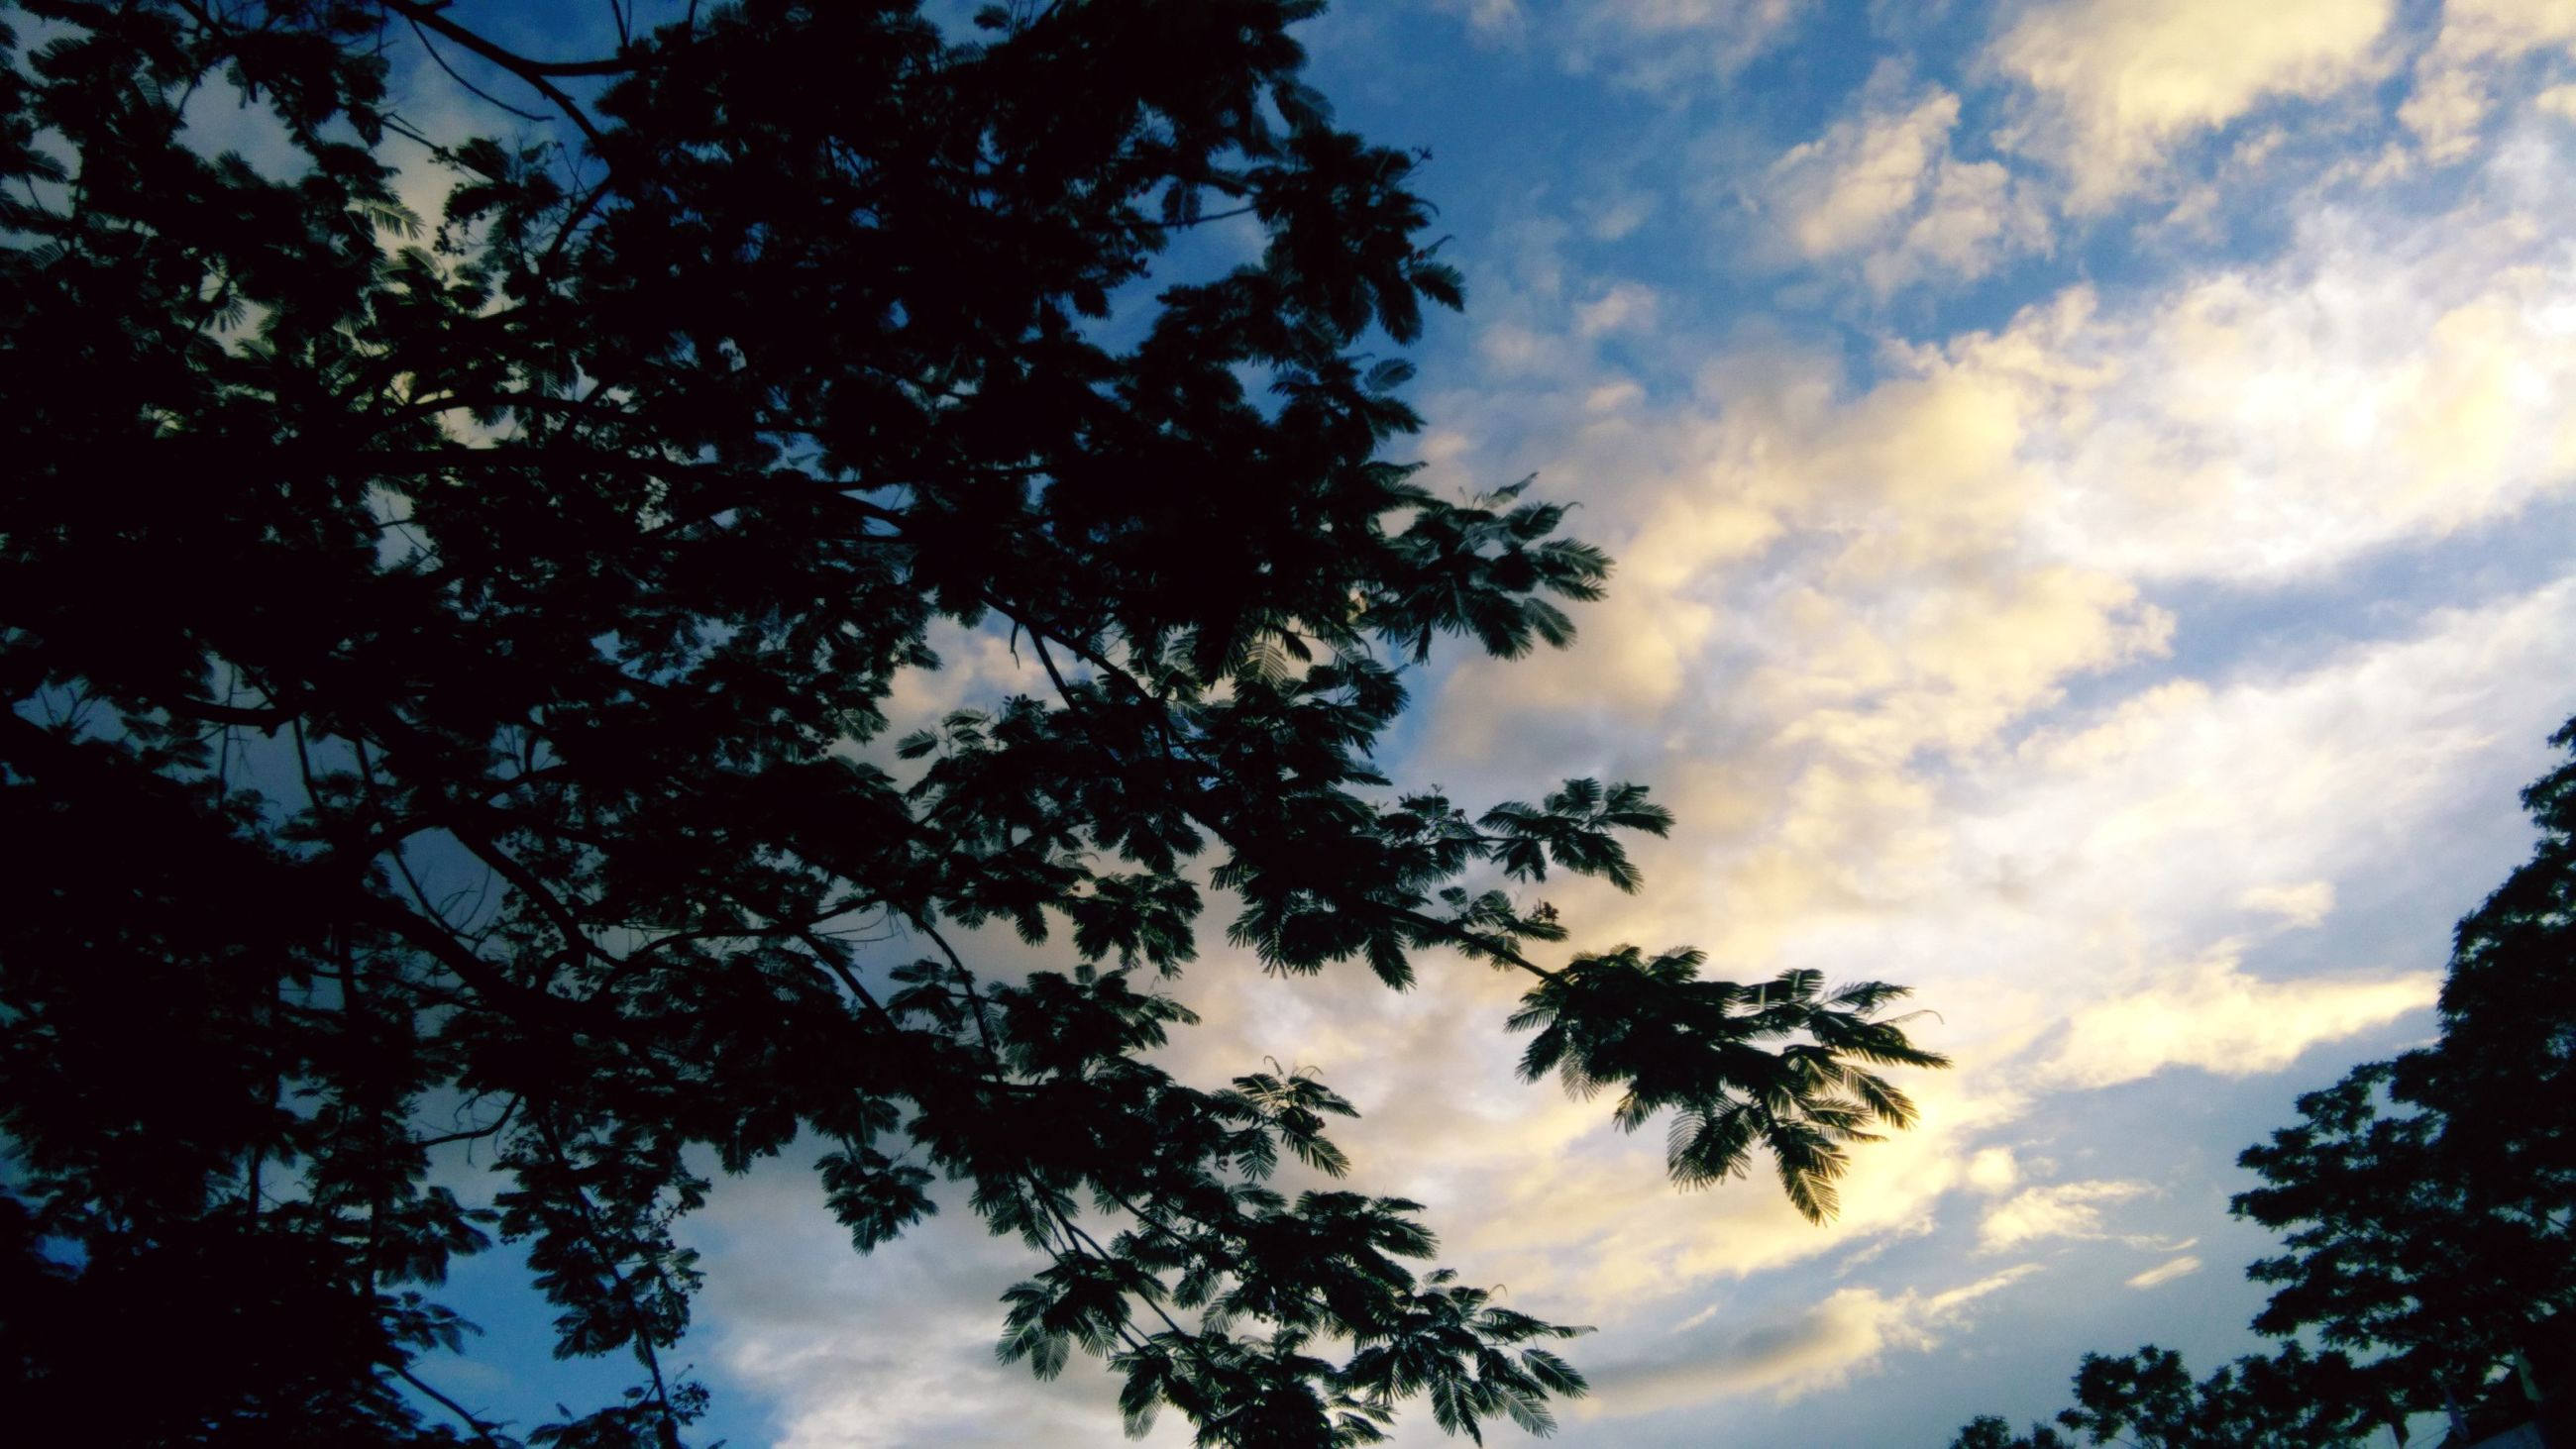 tree, low angle view, nature, sky, beauty in nature, growth, silhouette, branch, tranquility, no people, cloud - sky, scenics, outdoors, day, height